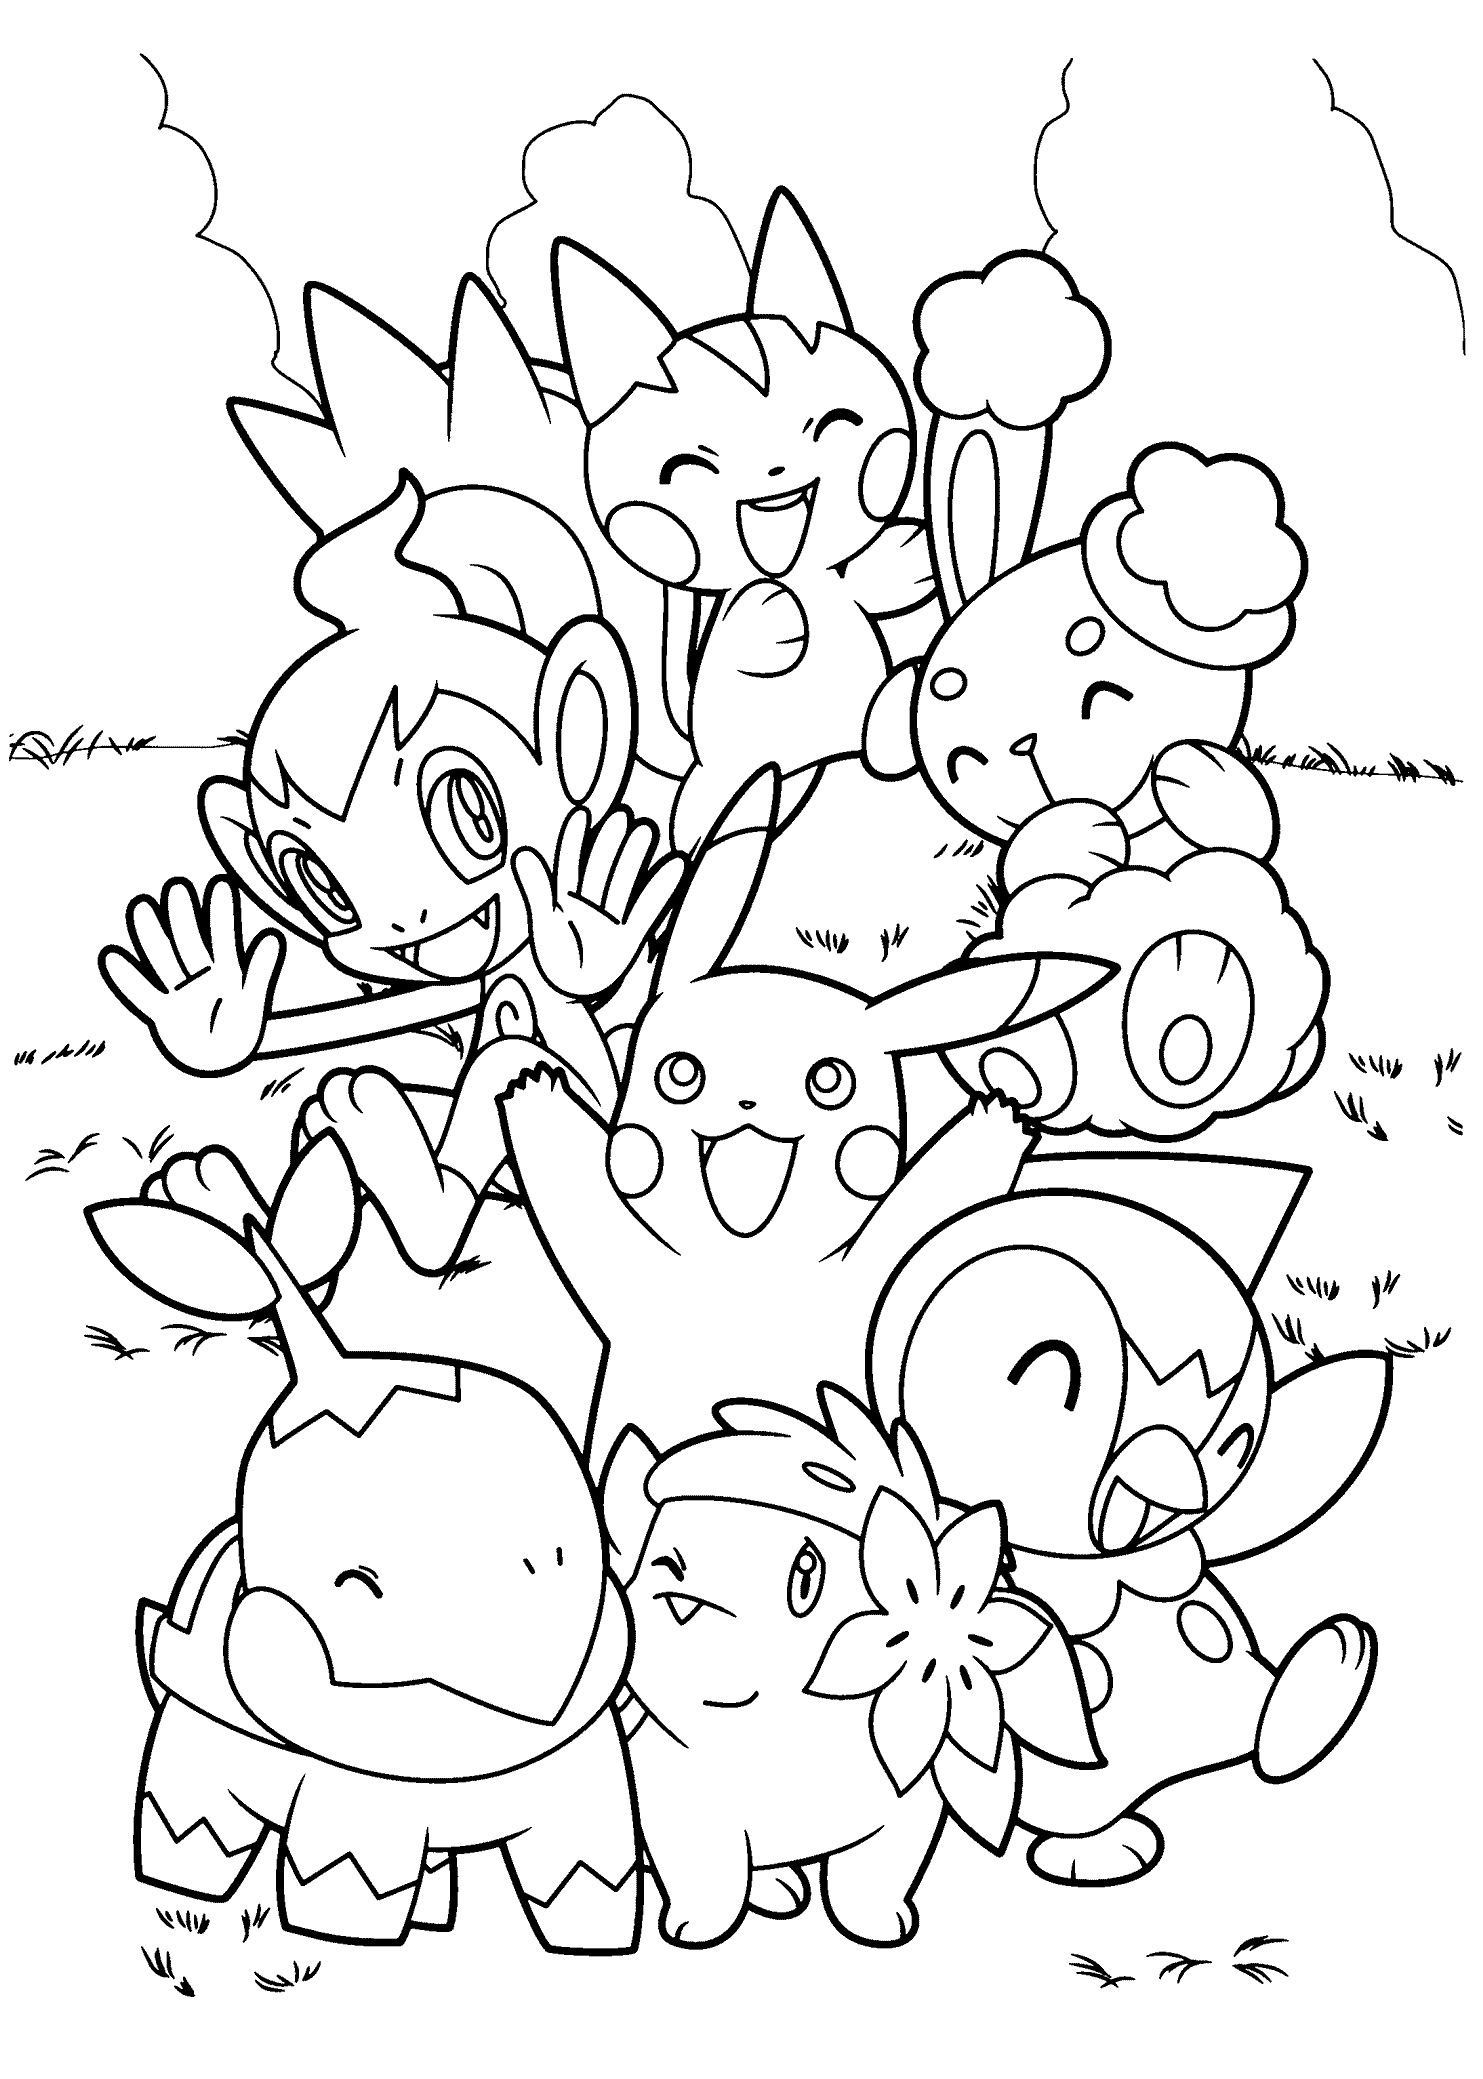 Legendary Pokemon Coloring Pages Lovely top 8 Free Printable